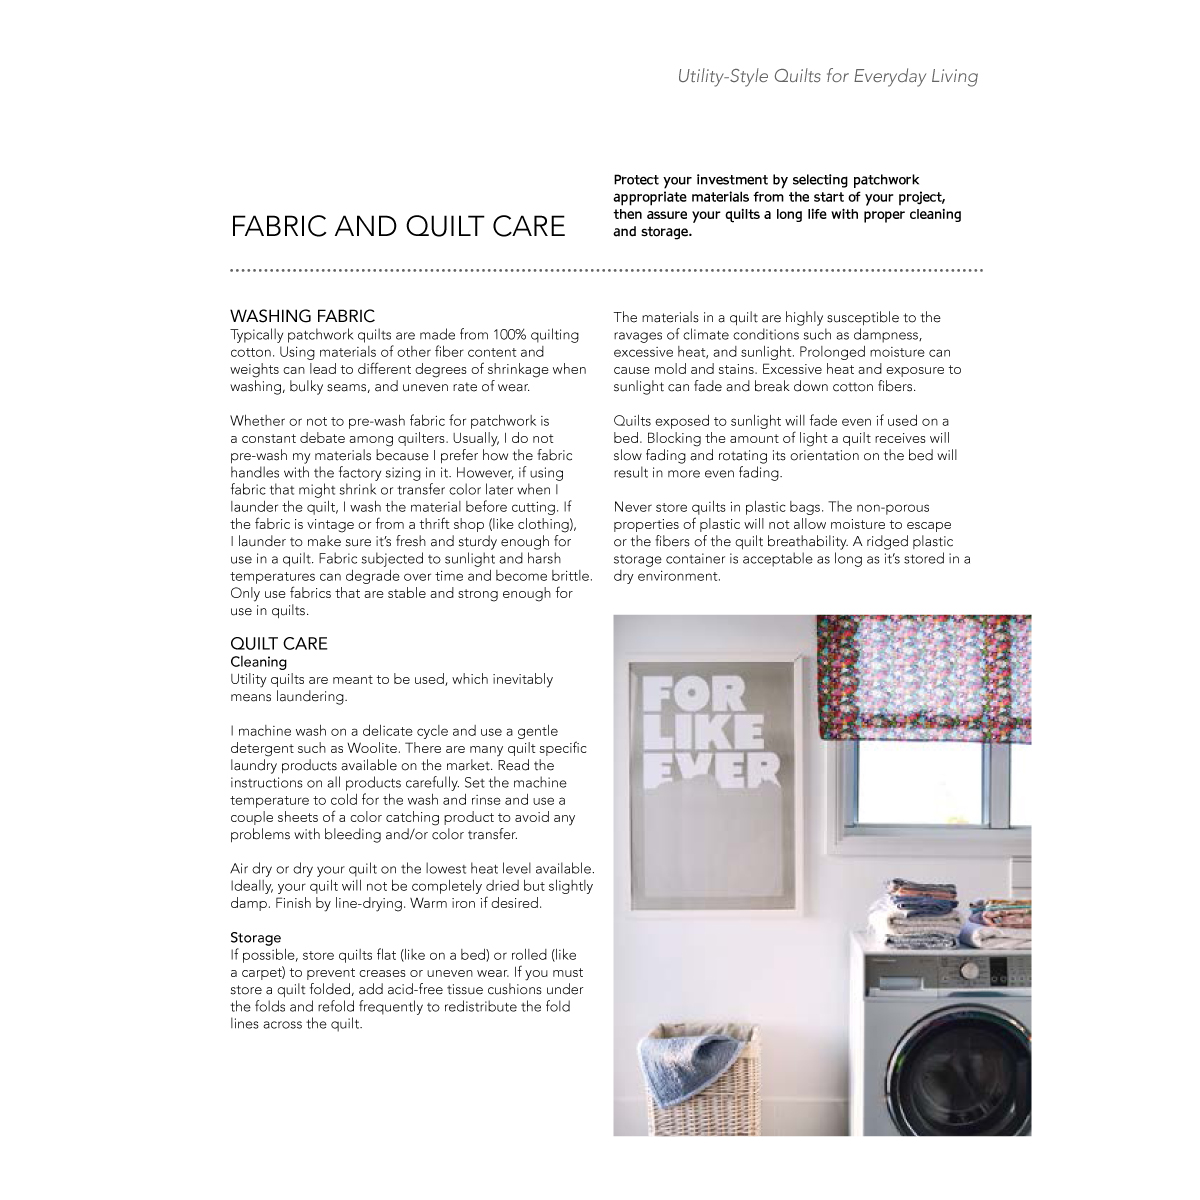 Excerpt from Utility-Style Quilts for Everyday Living book